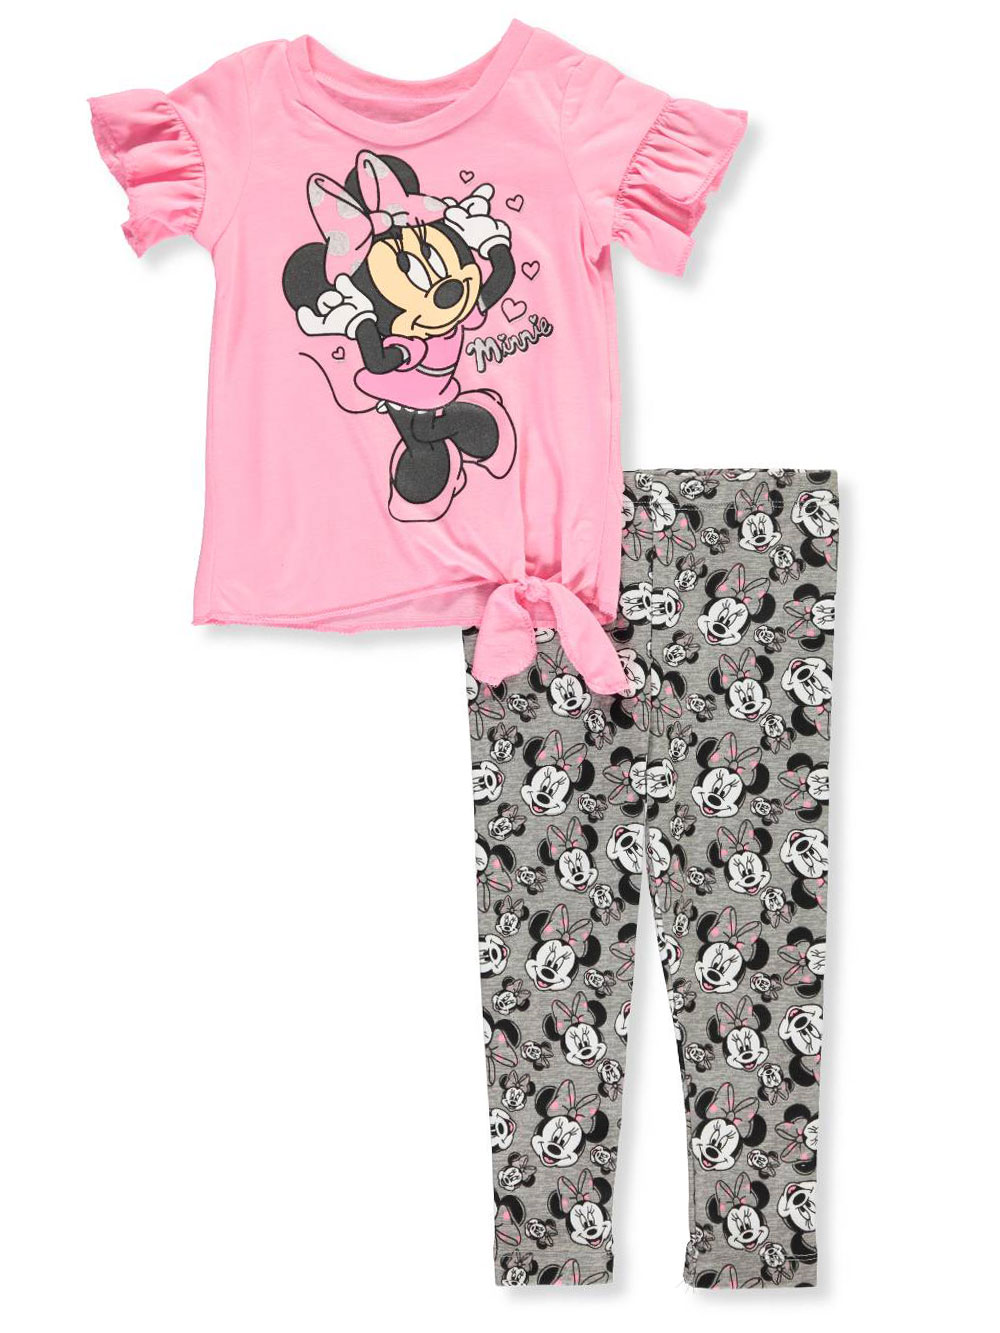 222f92cf4d68a Minnie Mouse 2-Piece Leggings Set Outfit by Disney in Pink